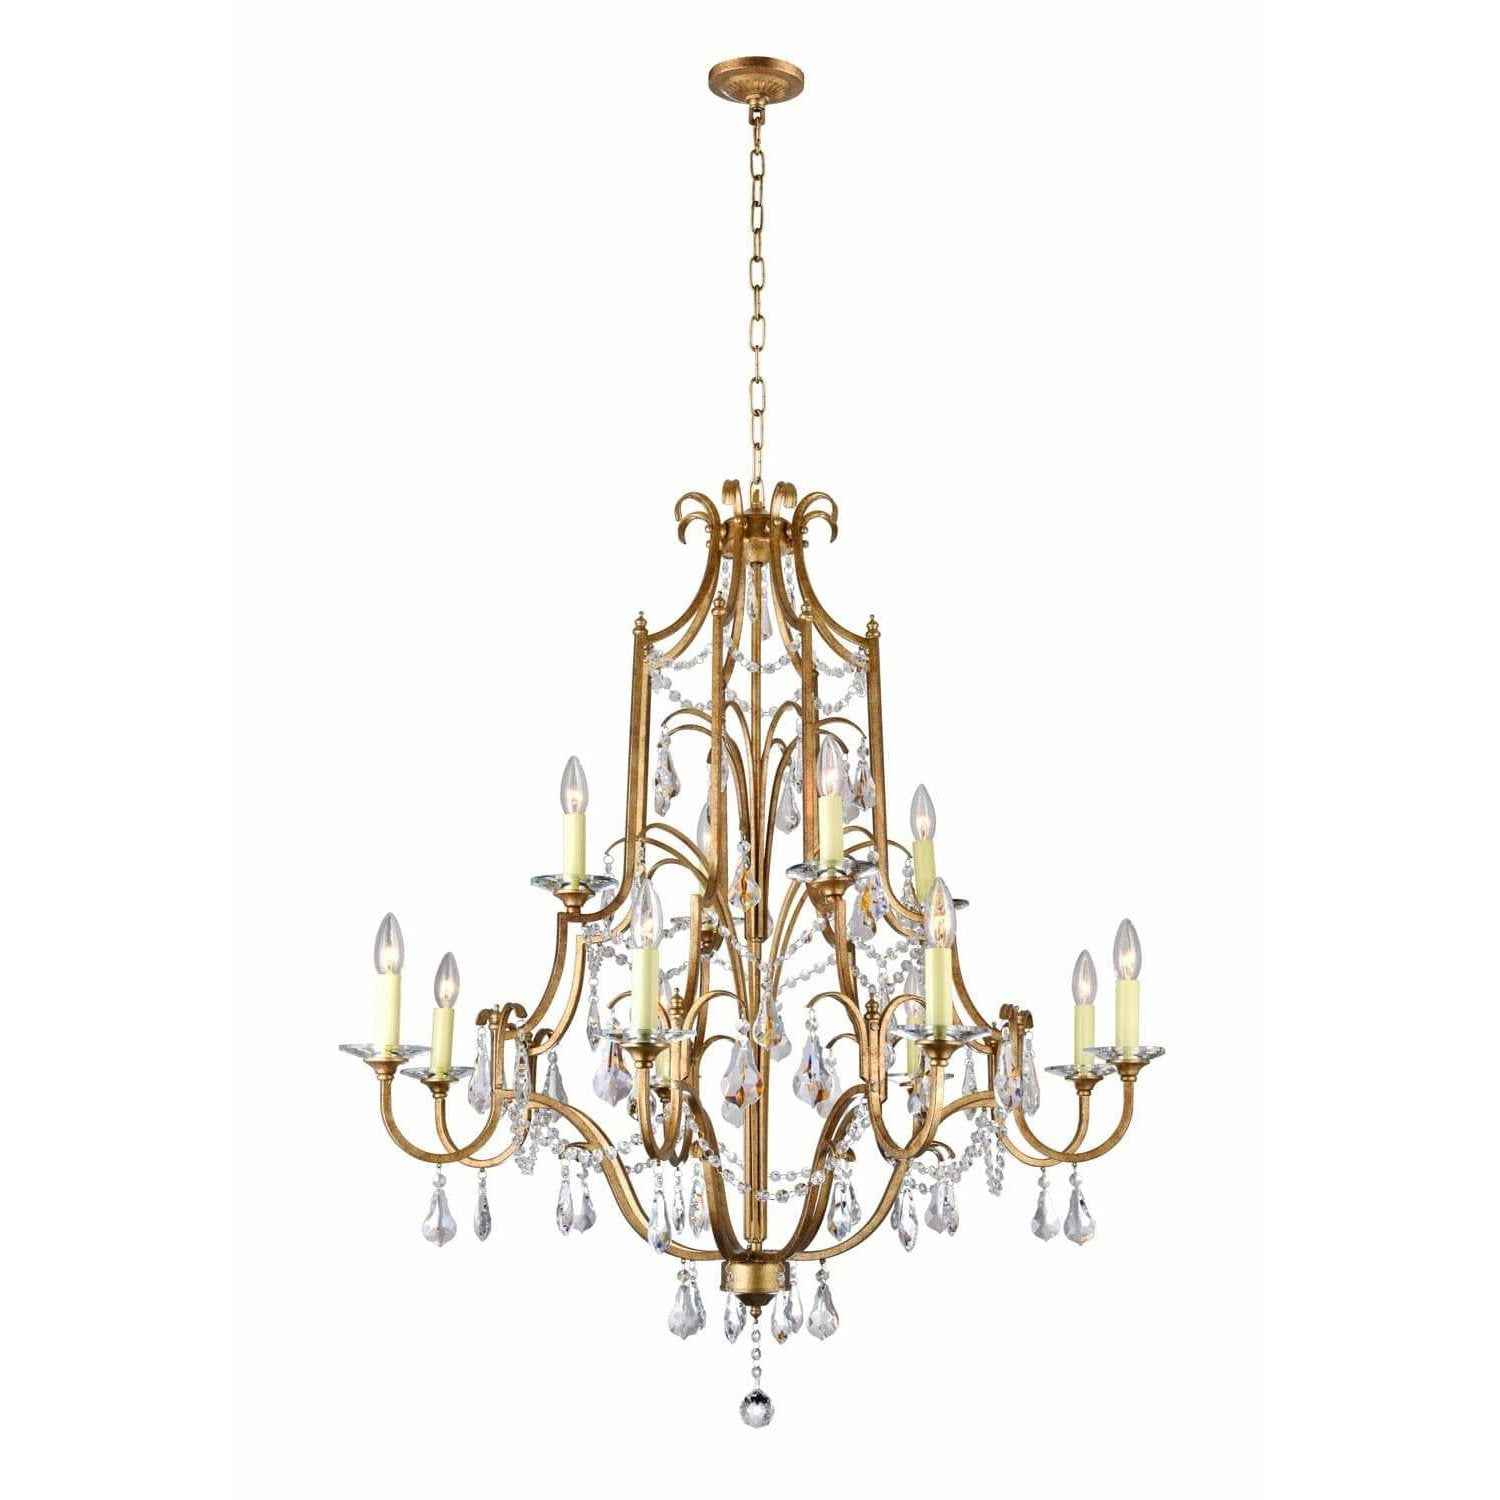 CWI Lighting Chandeliers Oxidized Bronze / K9 Clear Electra 12 Light Up Chandelier with Oxidized Bronze finish by CWI Lighting 9836P37-12-125